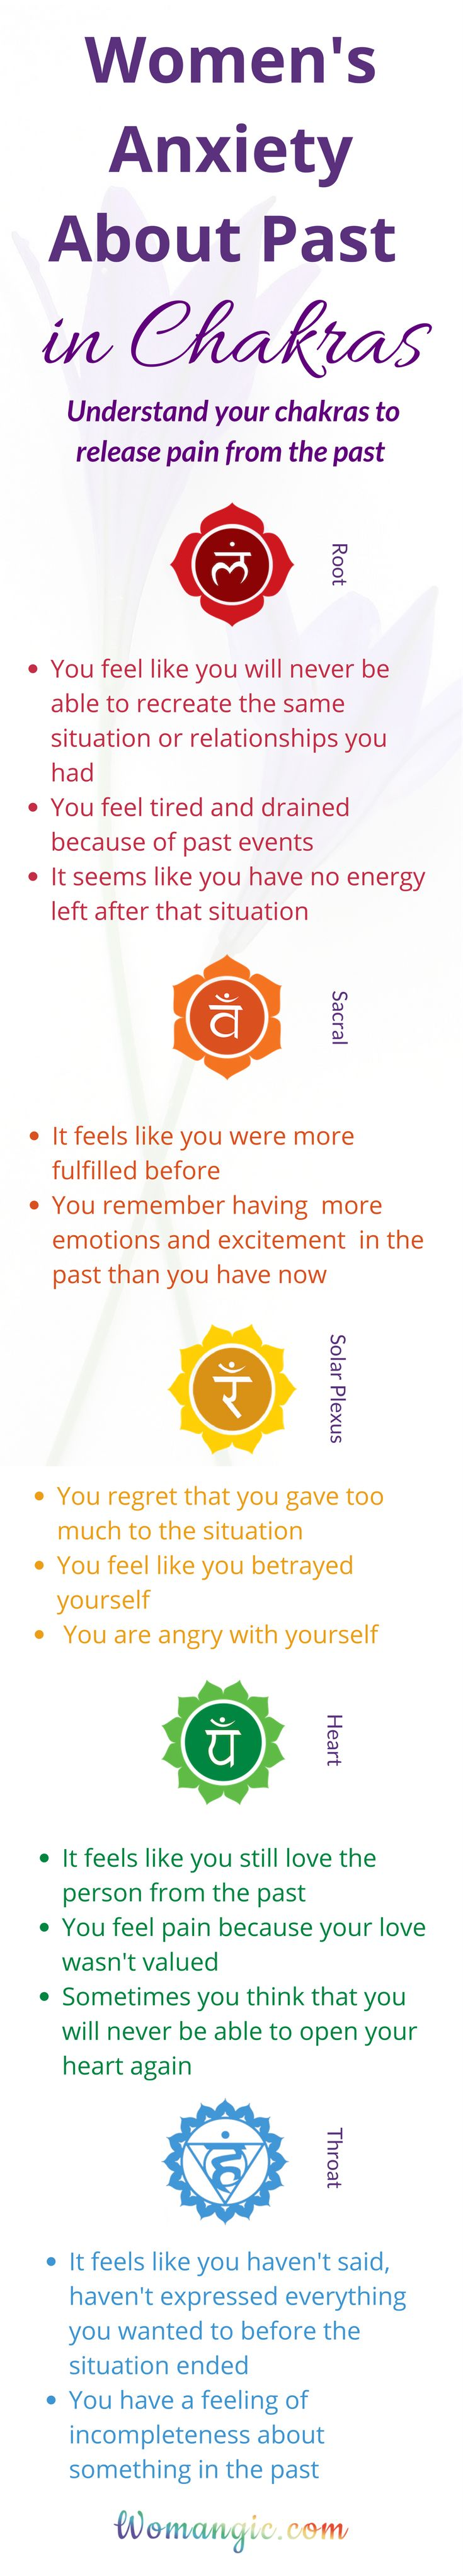 ENERGY MASTERY  Women's Anxiety About Past in Chakras is great for those wanting to understand how to release trapped pain from the past in their chakras and bring about wellbeing. http://www.inner-being.eu